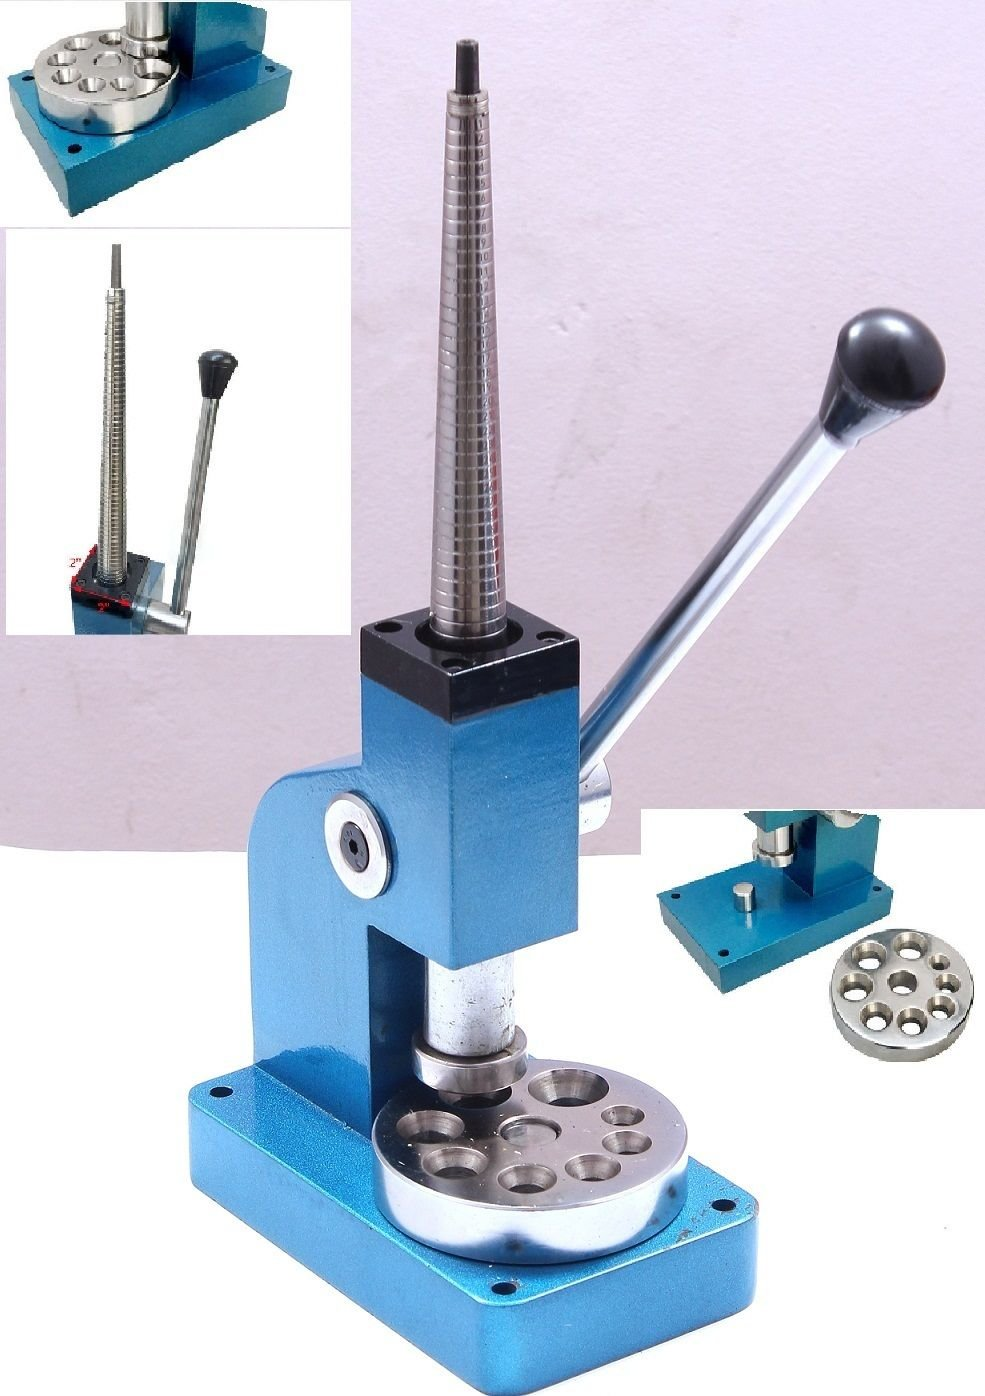 ING STRETCHER ENLARGER REDUCER JEWELRY BENCH TOP SIZER BAND SIZING REPAIR TOOL